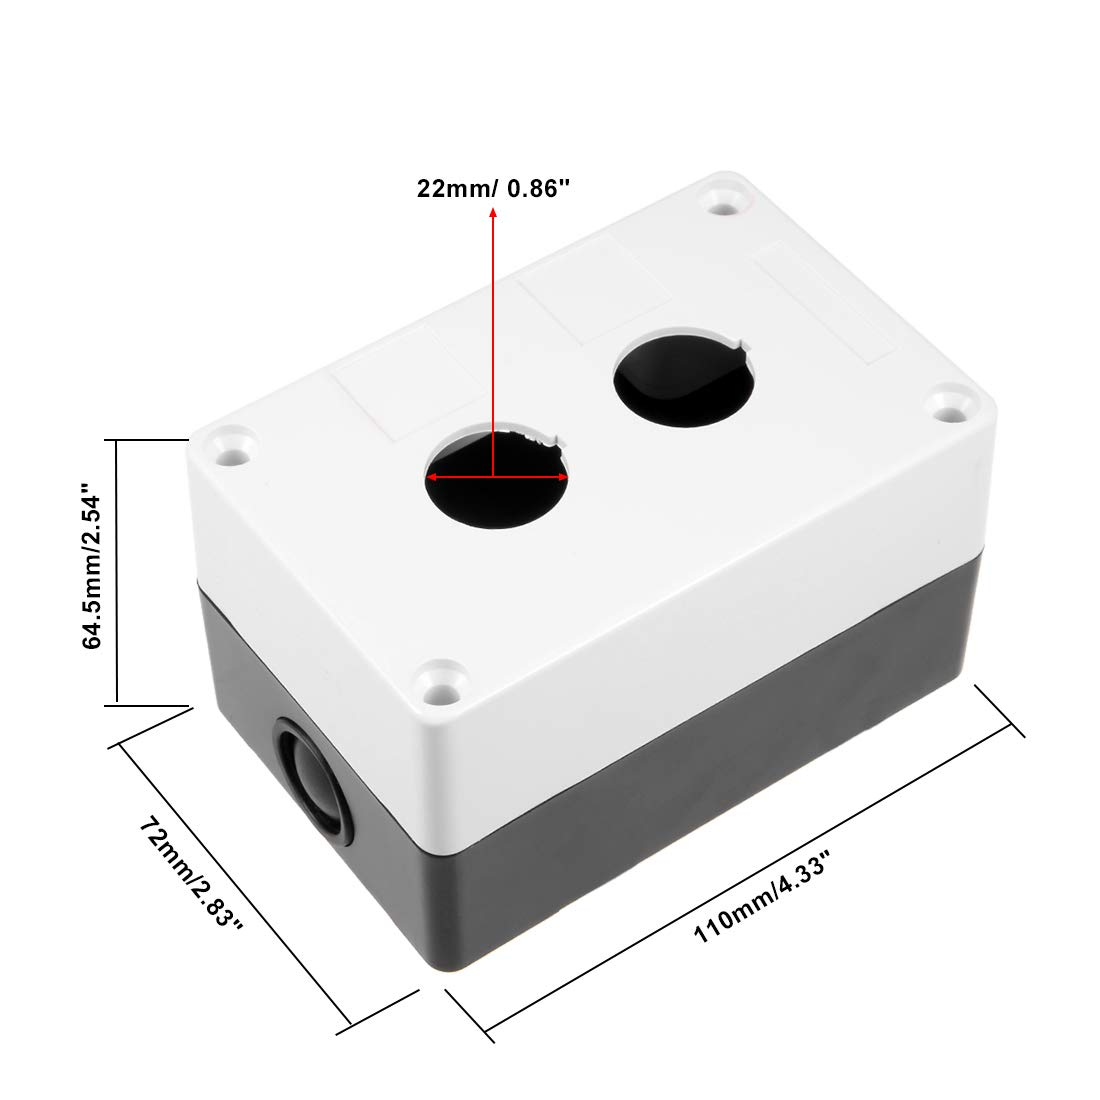 uxcell/® Push Button Switch Control Station Box 22mm 2 Button Hole Waterproof White and Black